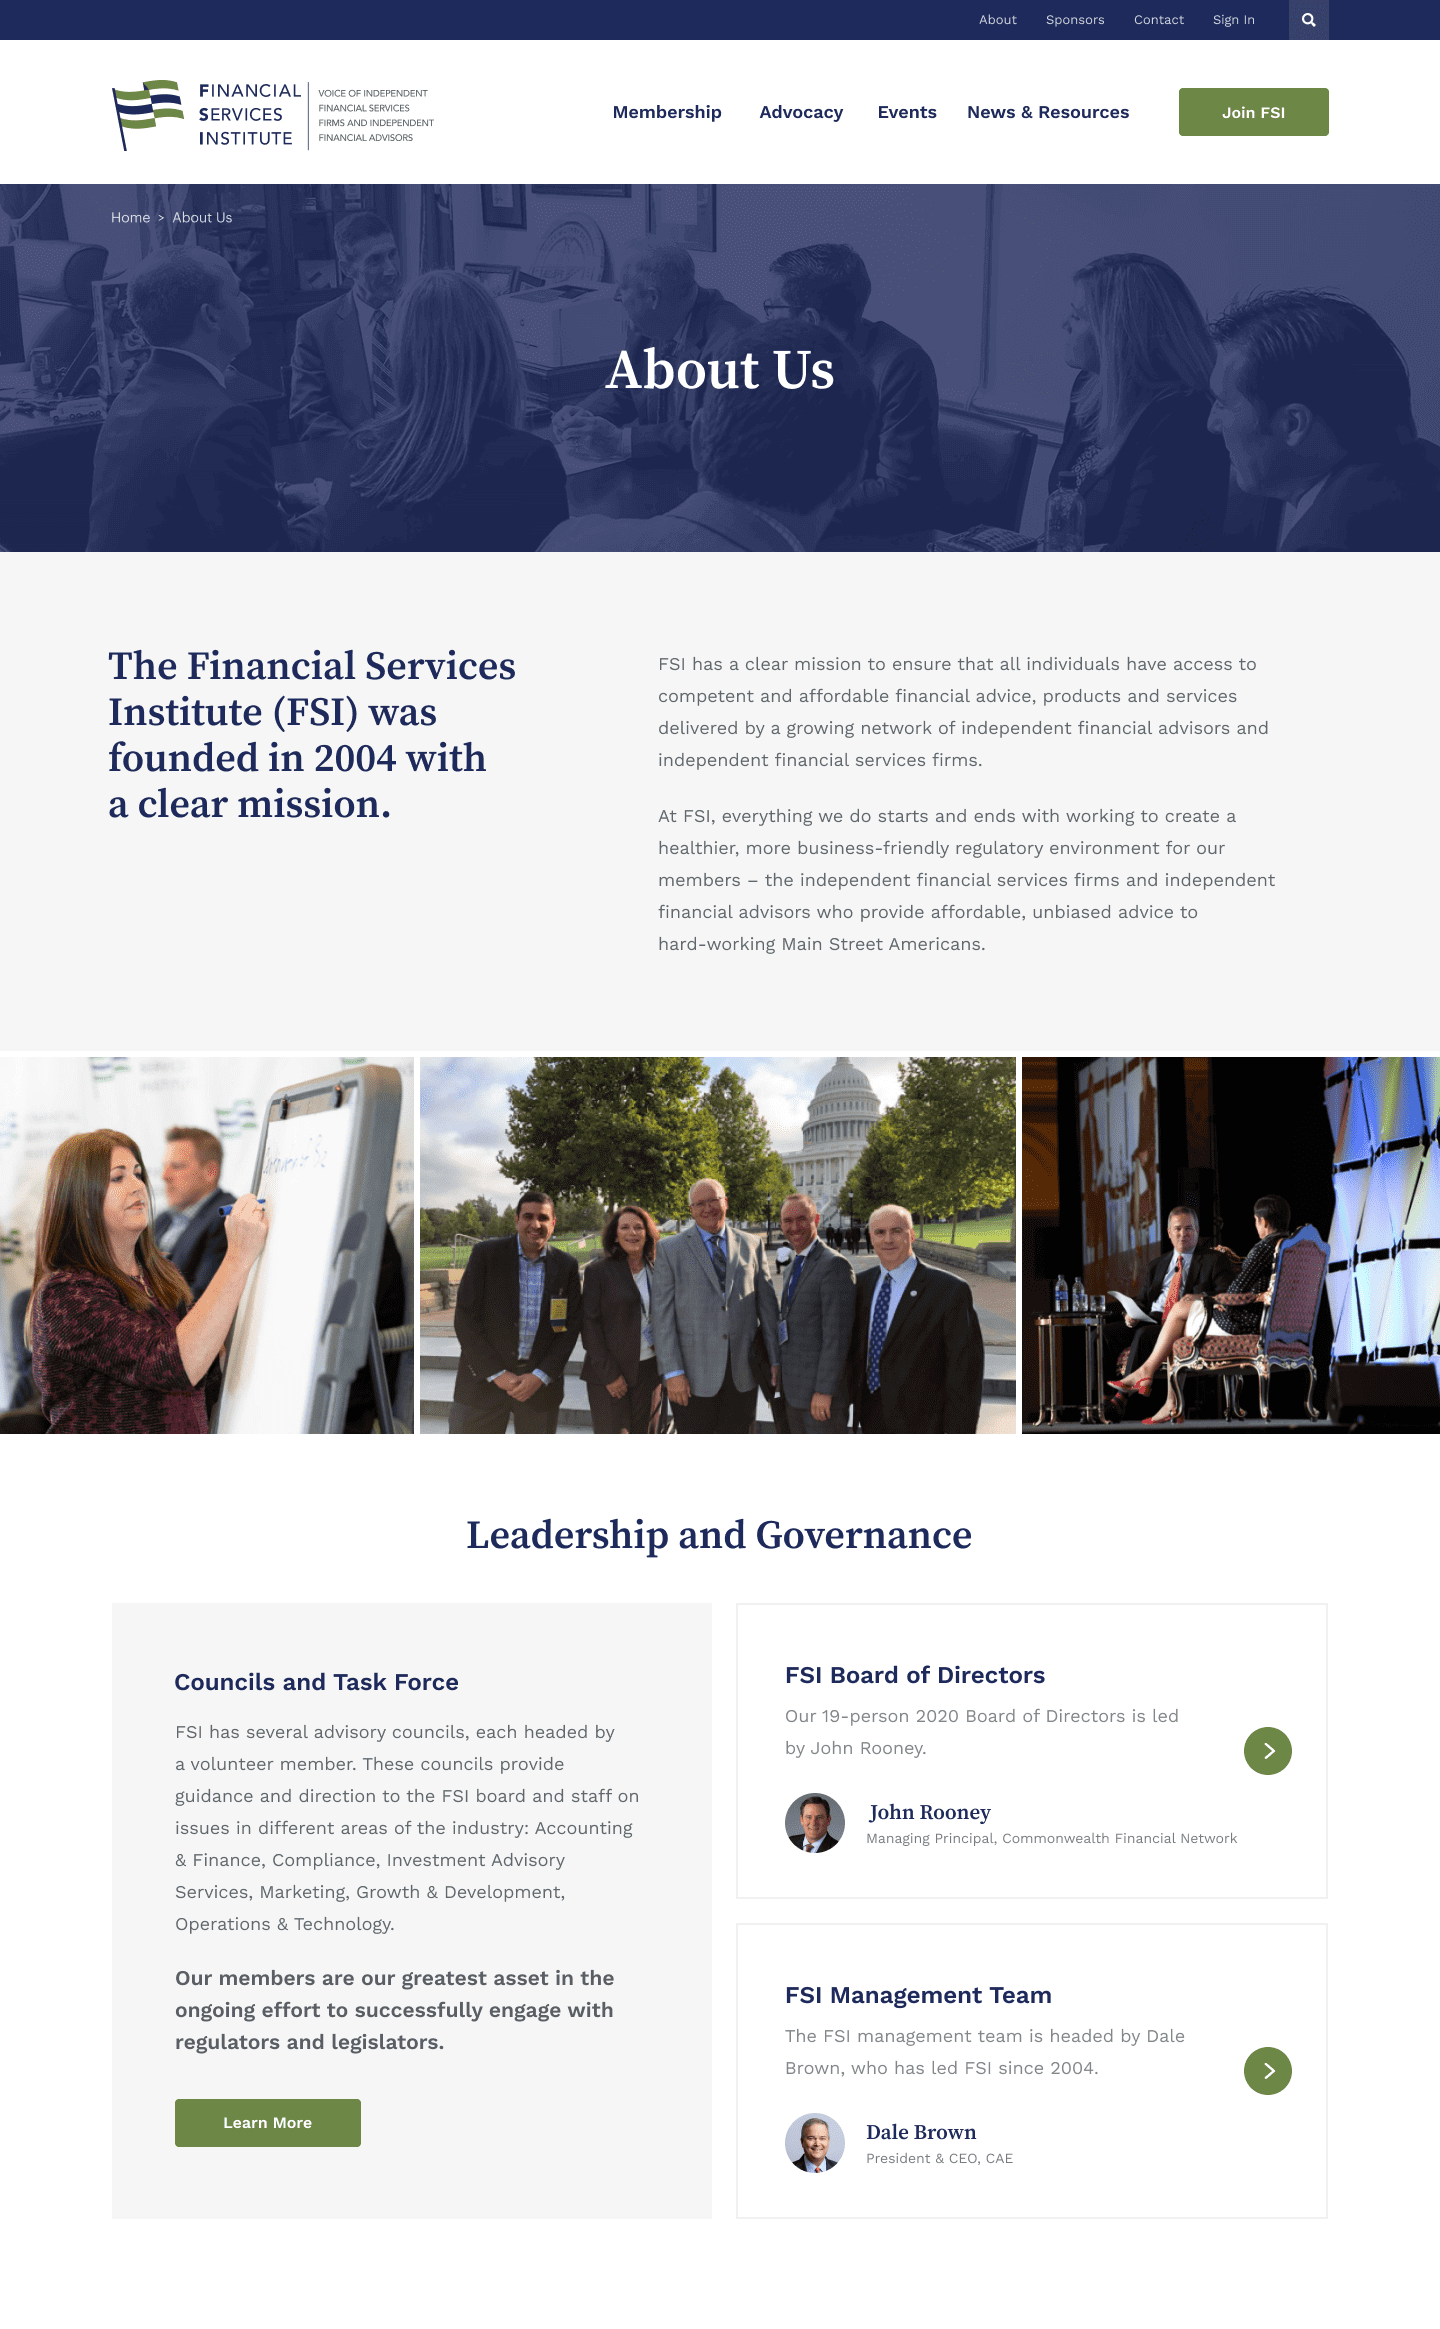 Financial Services Institute about page design